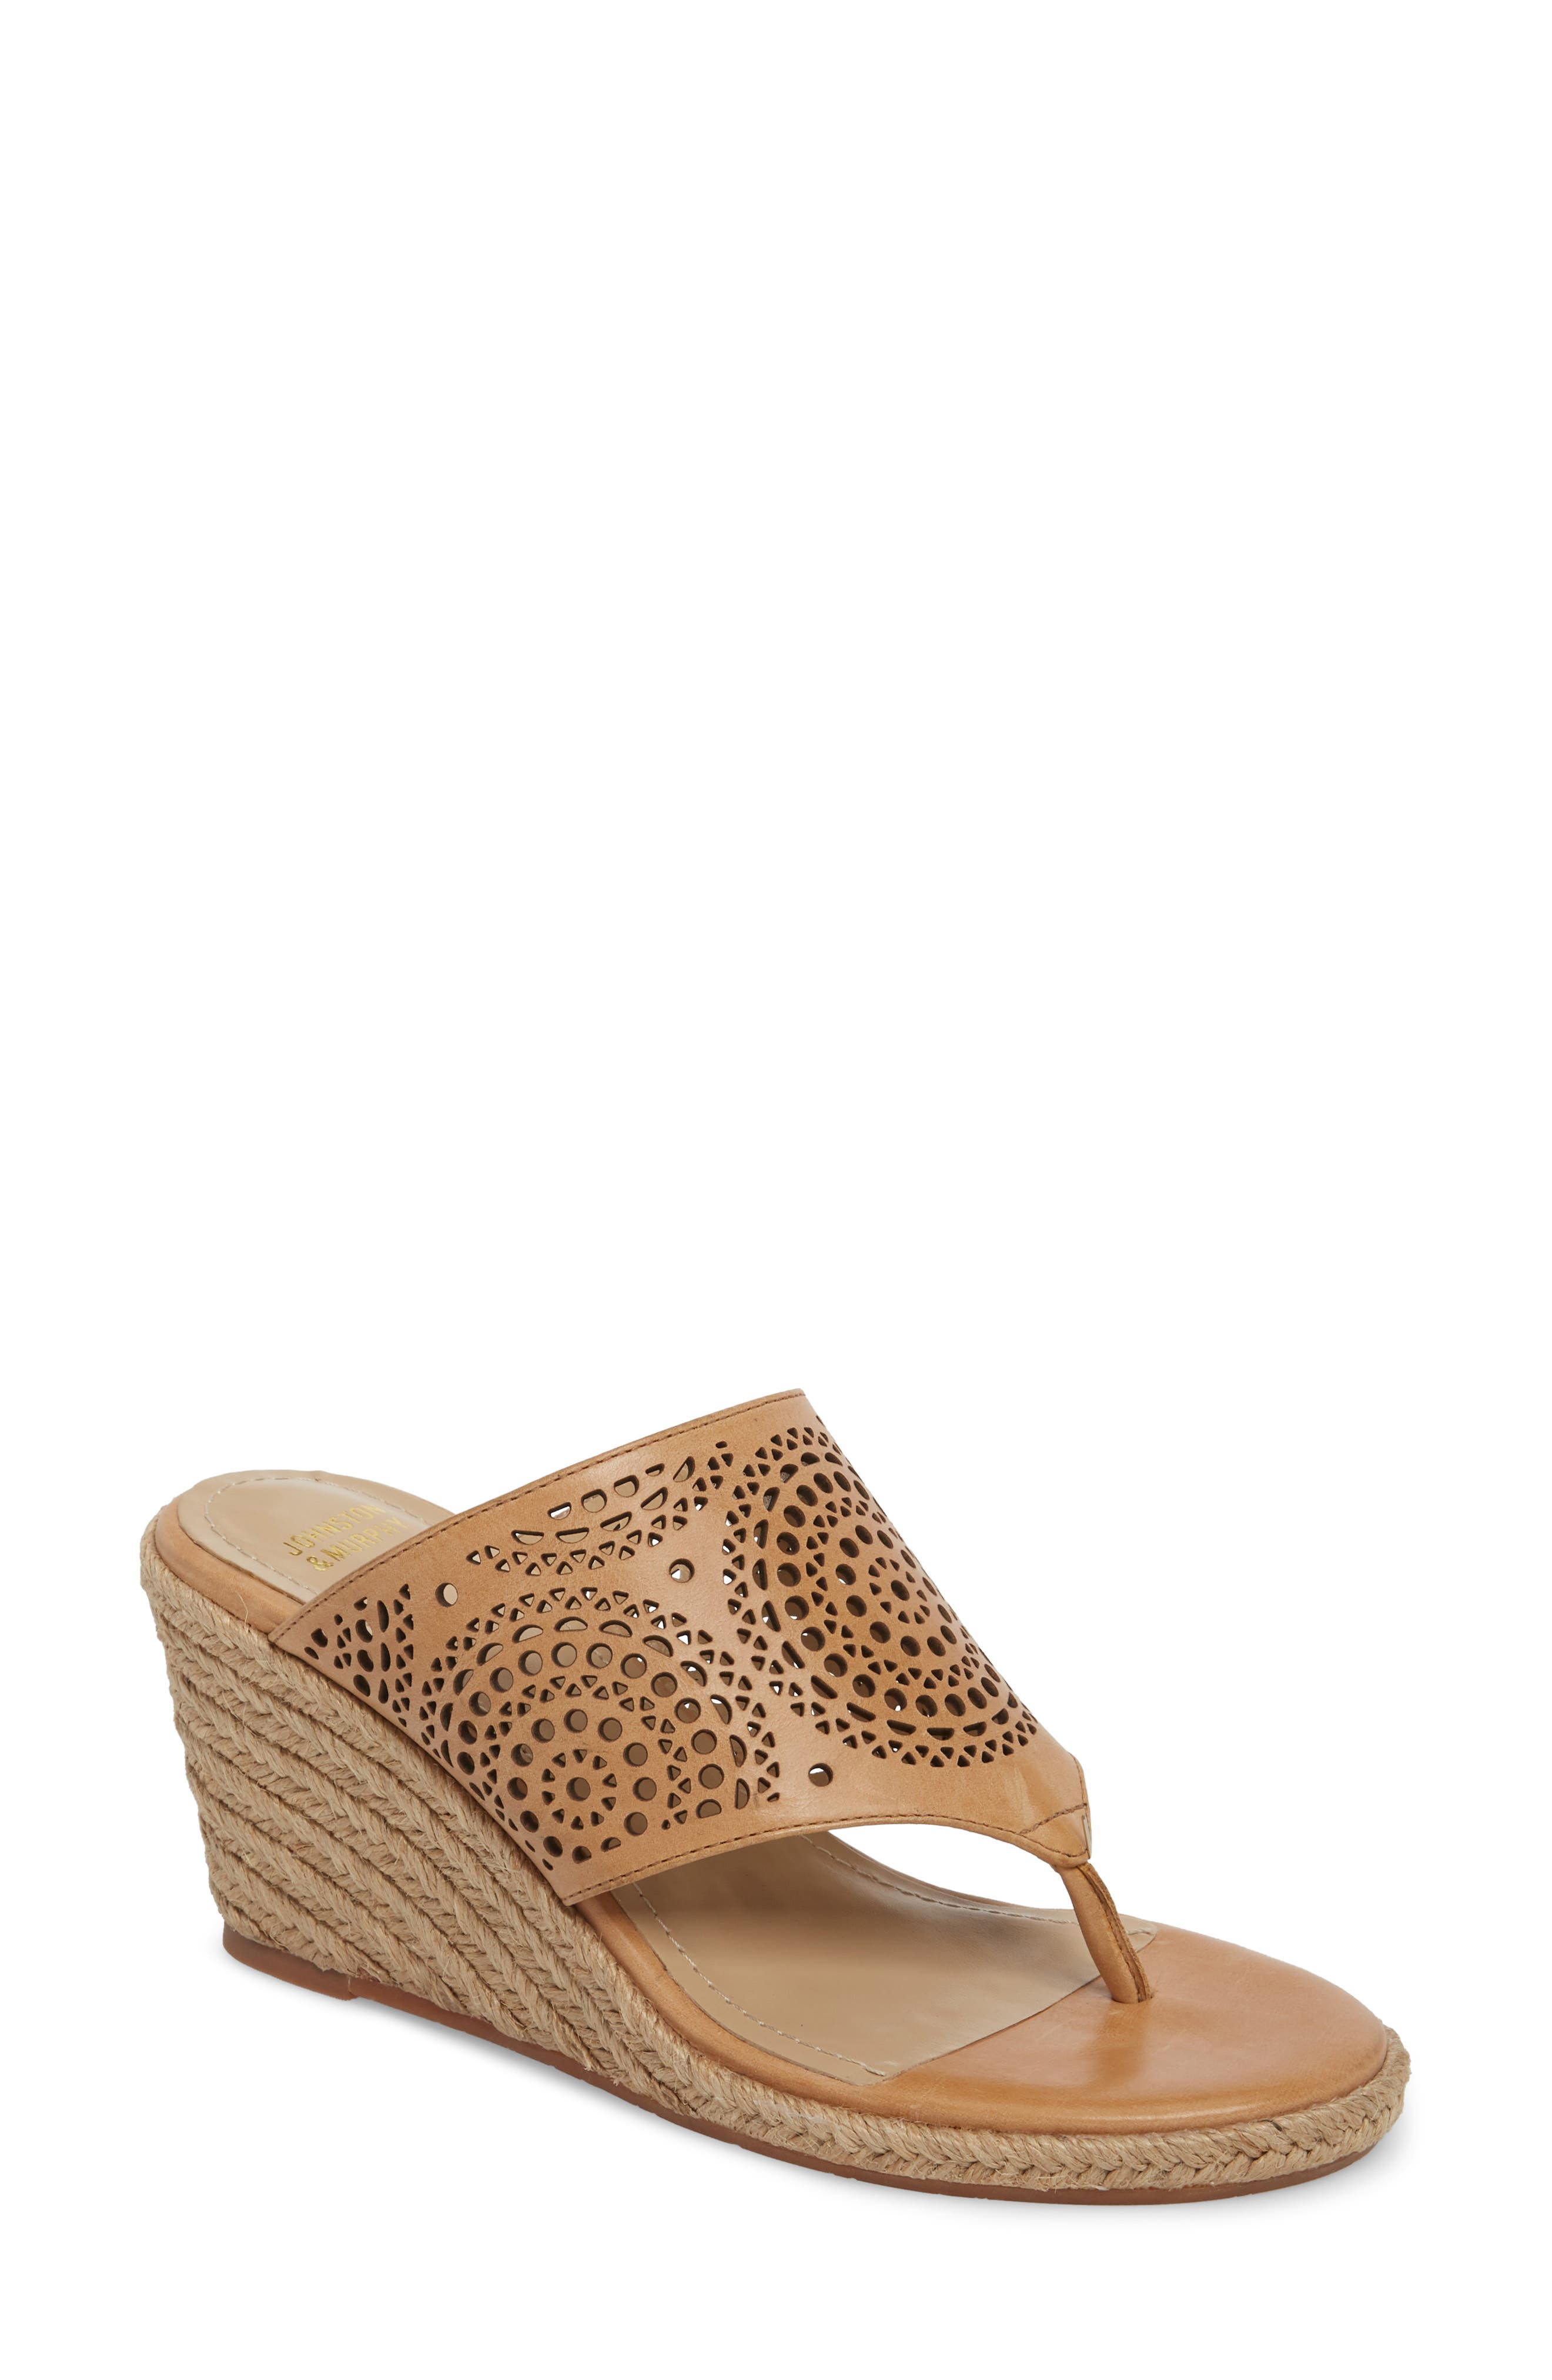 Gina Wedge Sandal,                             Main thumbnail 1, color,                             Tan Leather